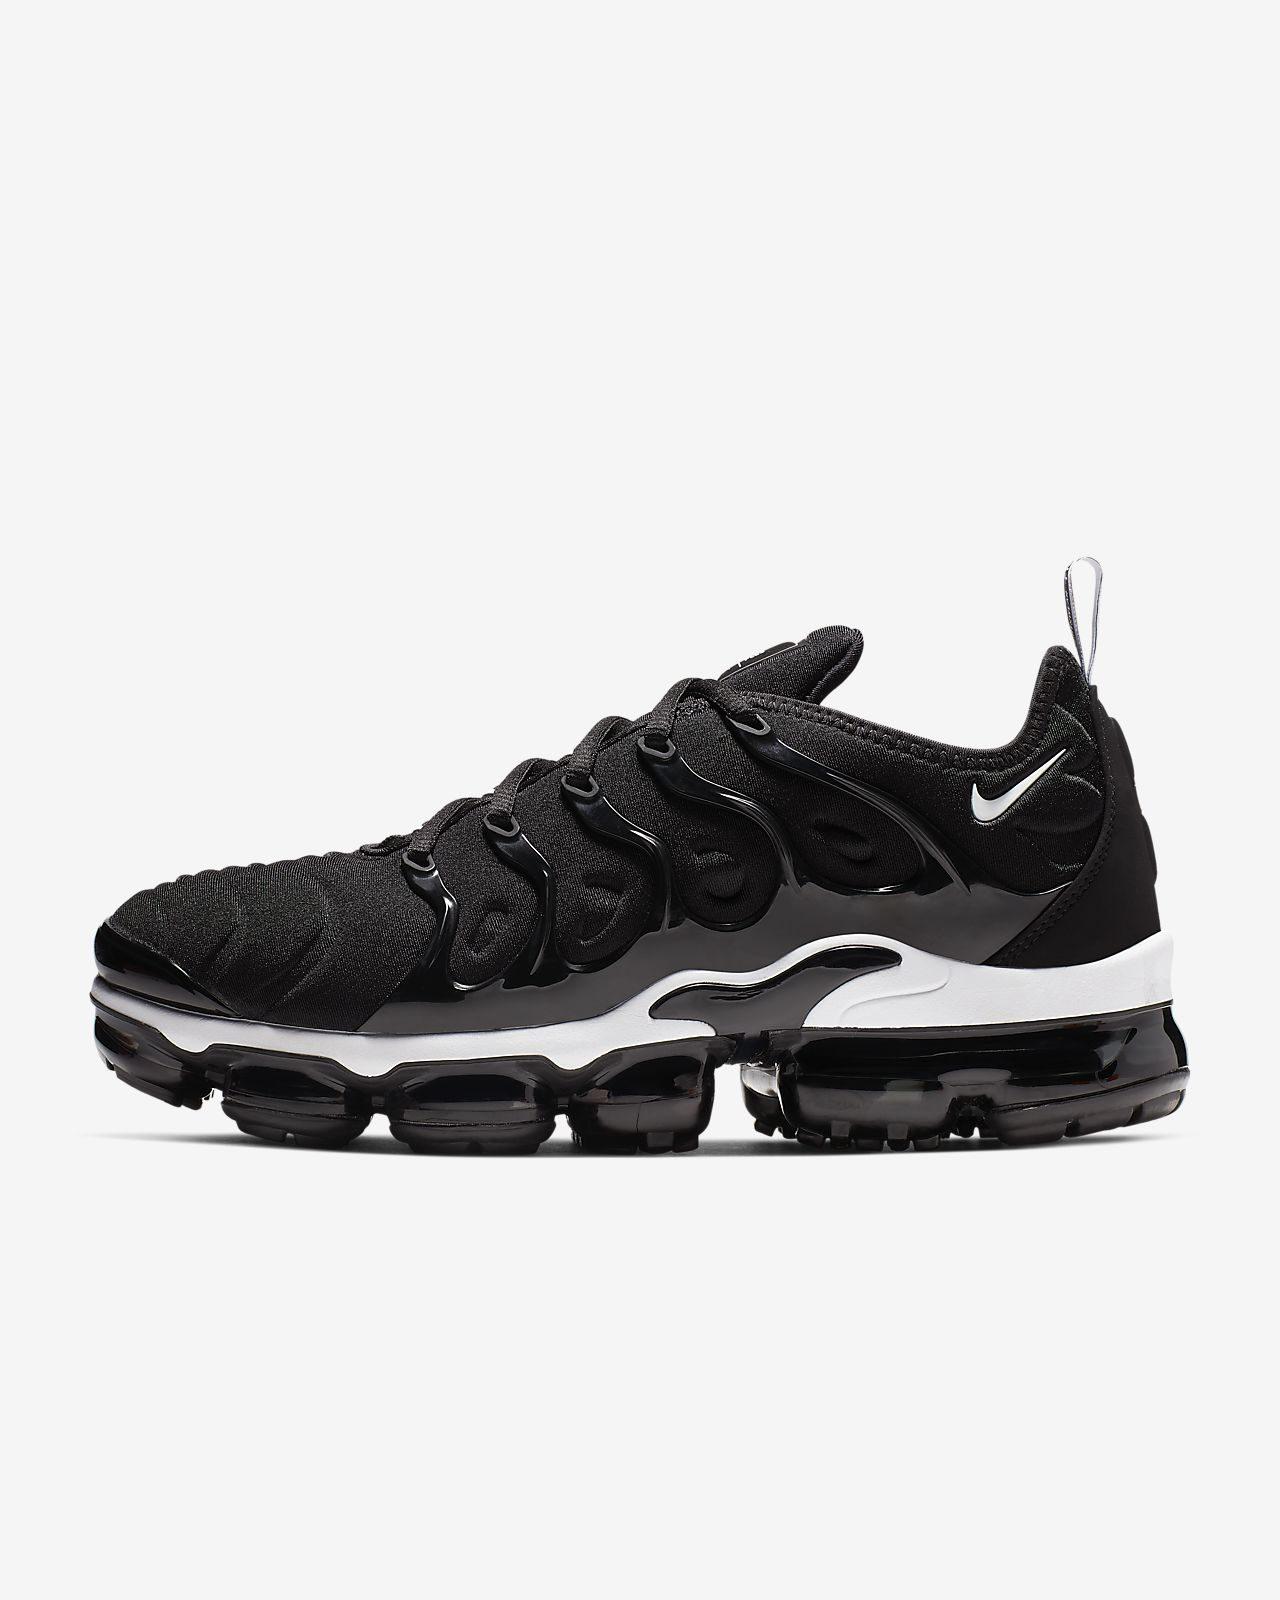 1fd8c64f4e7 Nike Air VaporMax Plus Men s Shoe. Nike.com GB